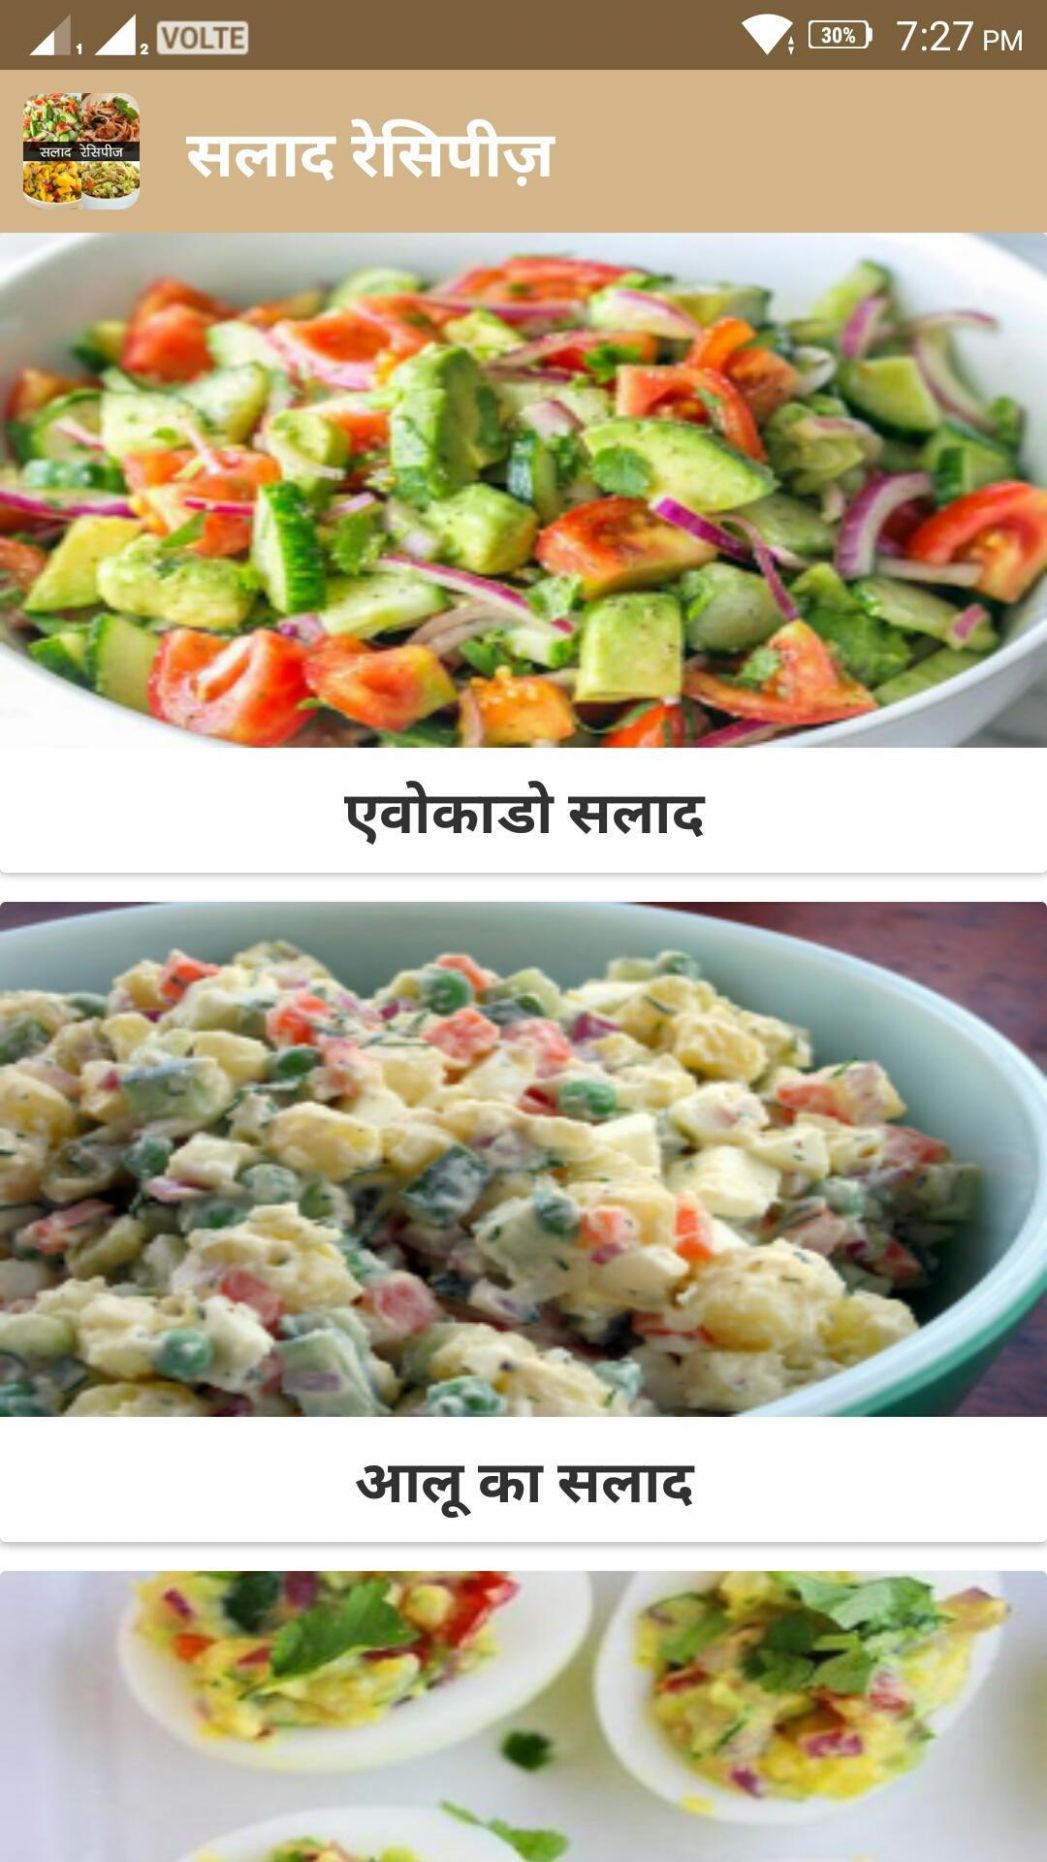 Salad Recipe in Hindi for Android - APK Download - Salad Recipes Hindi